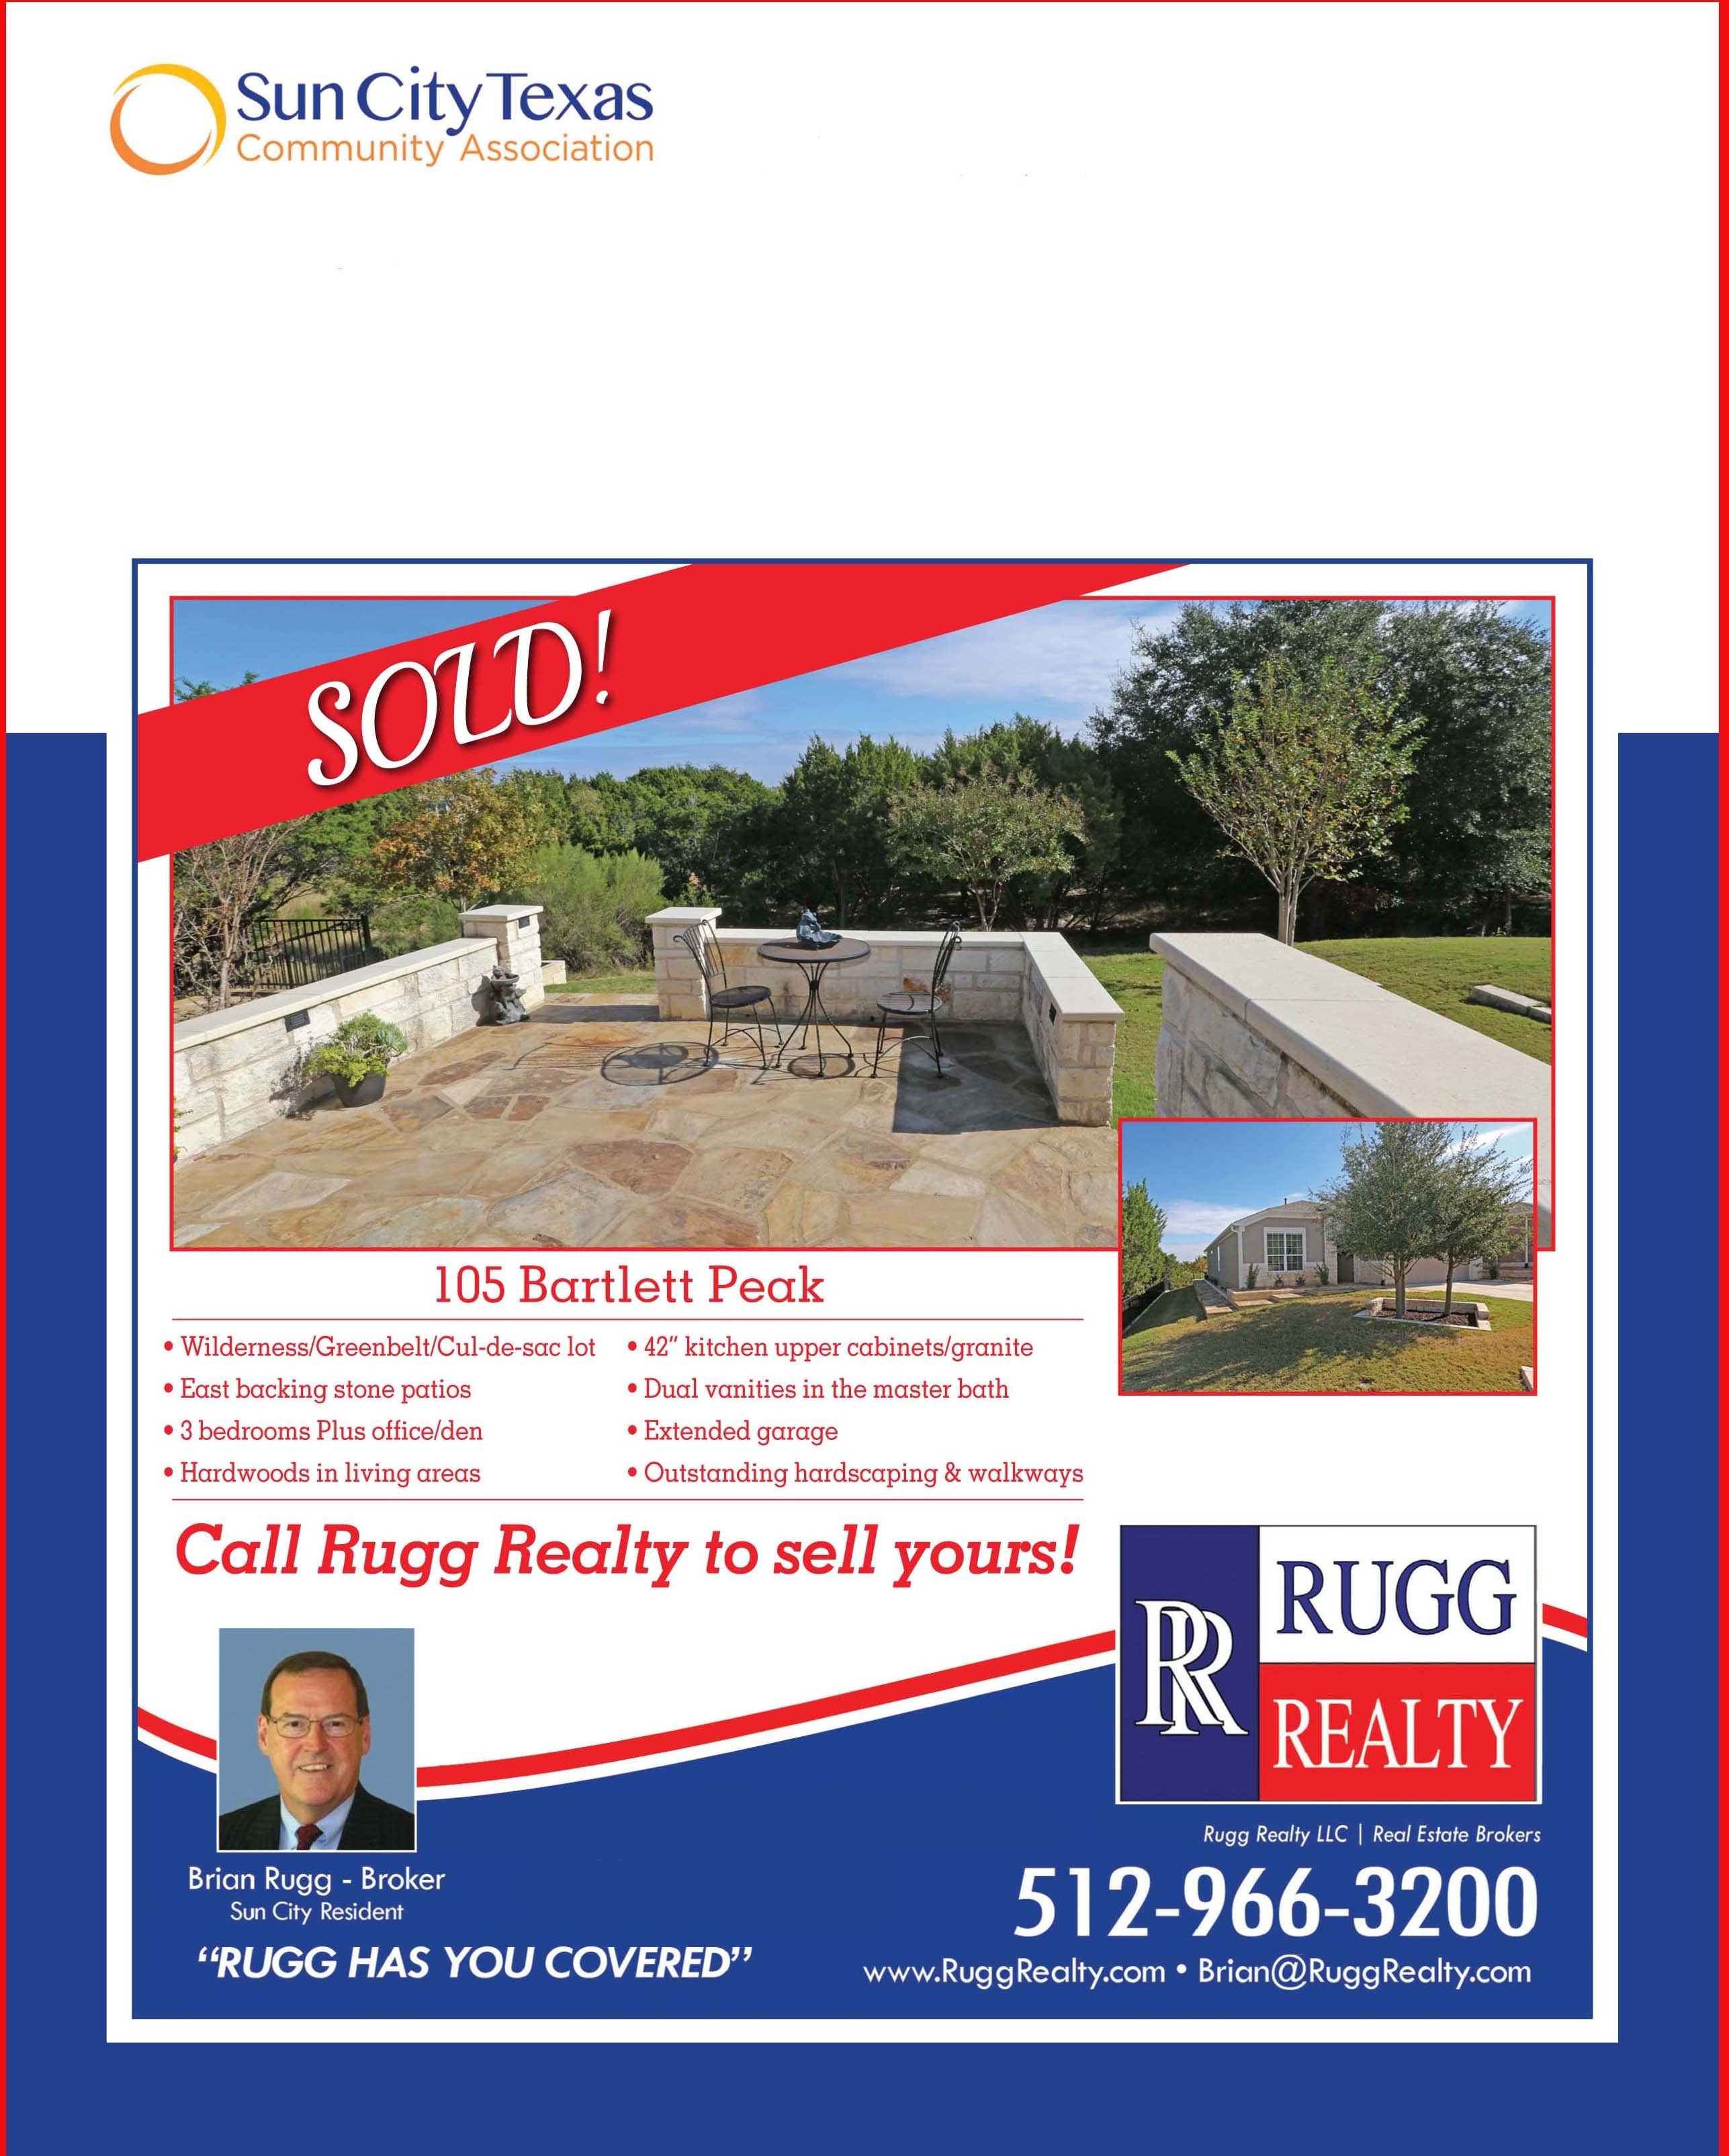 Sun City Texas sold